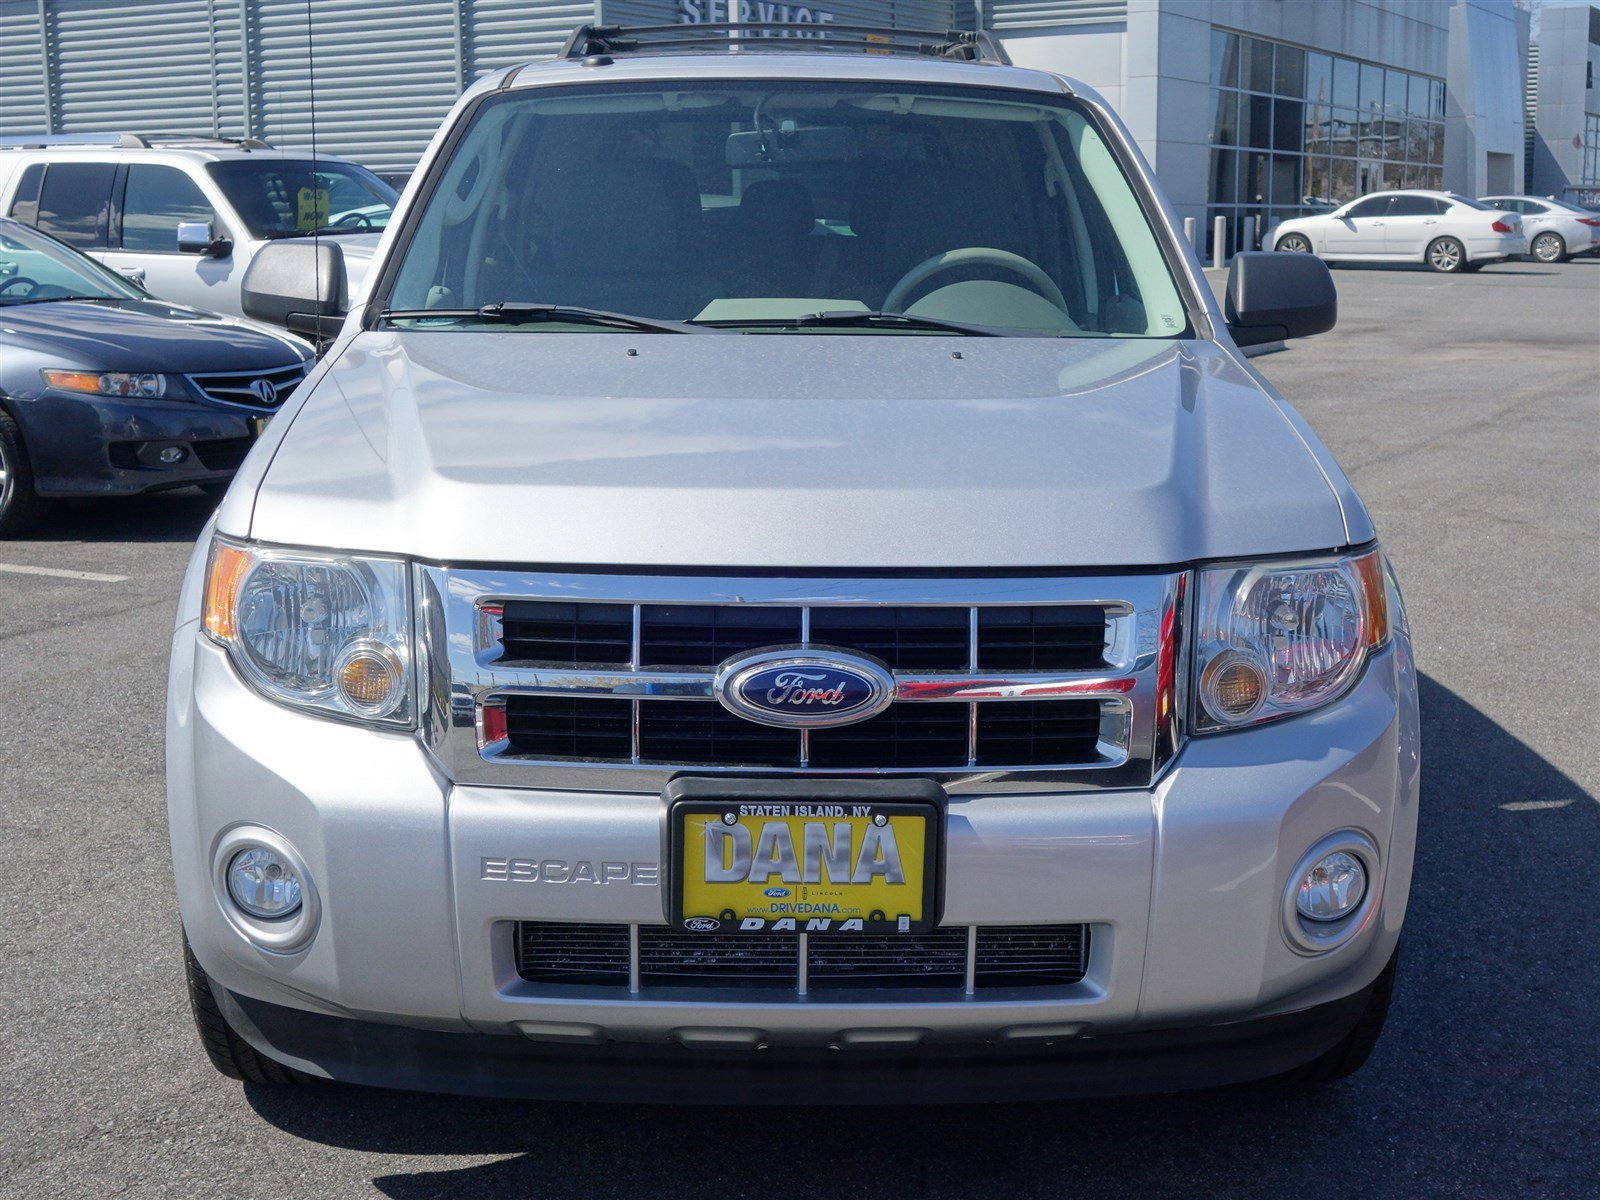 Pre Owned 2010 Ford Escape XLT SUV in Staten Island A